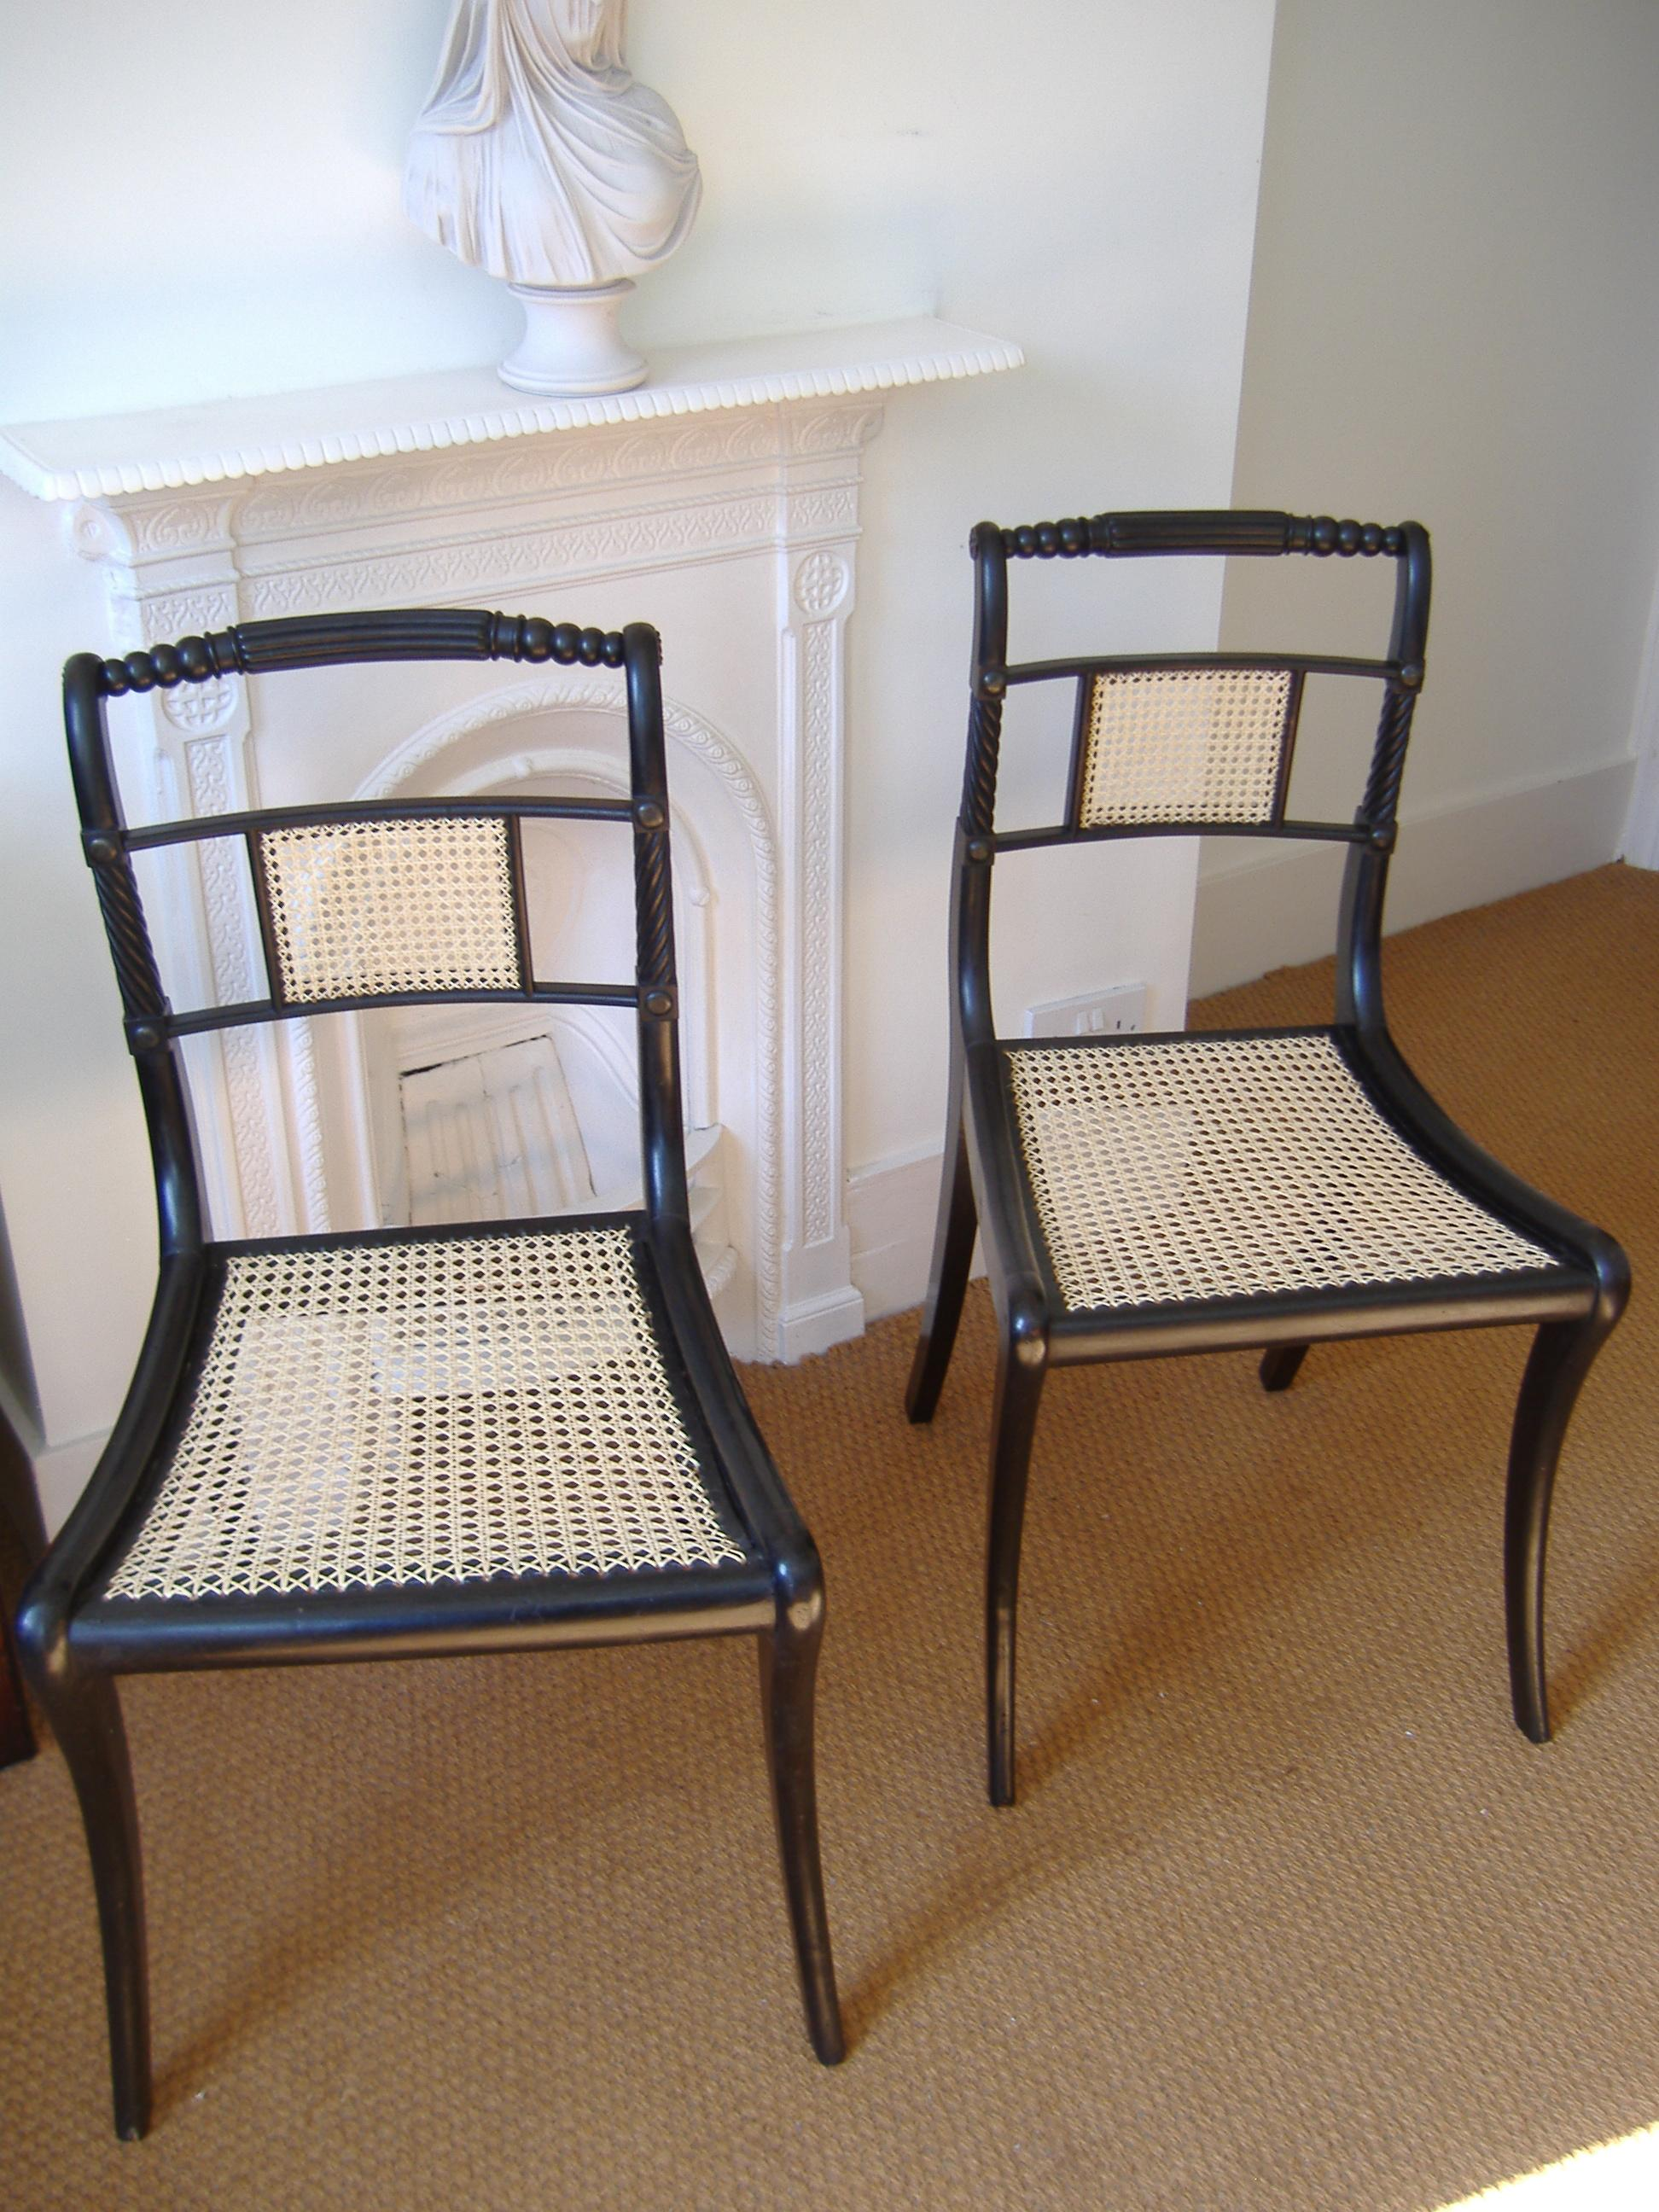 Cane Chair Repair Rush Chairs and woven seat replacement specailist